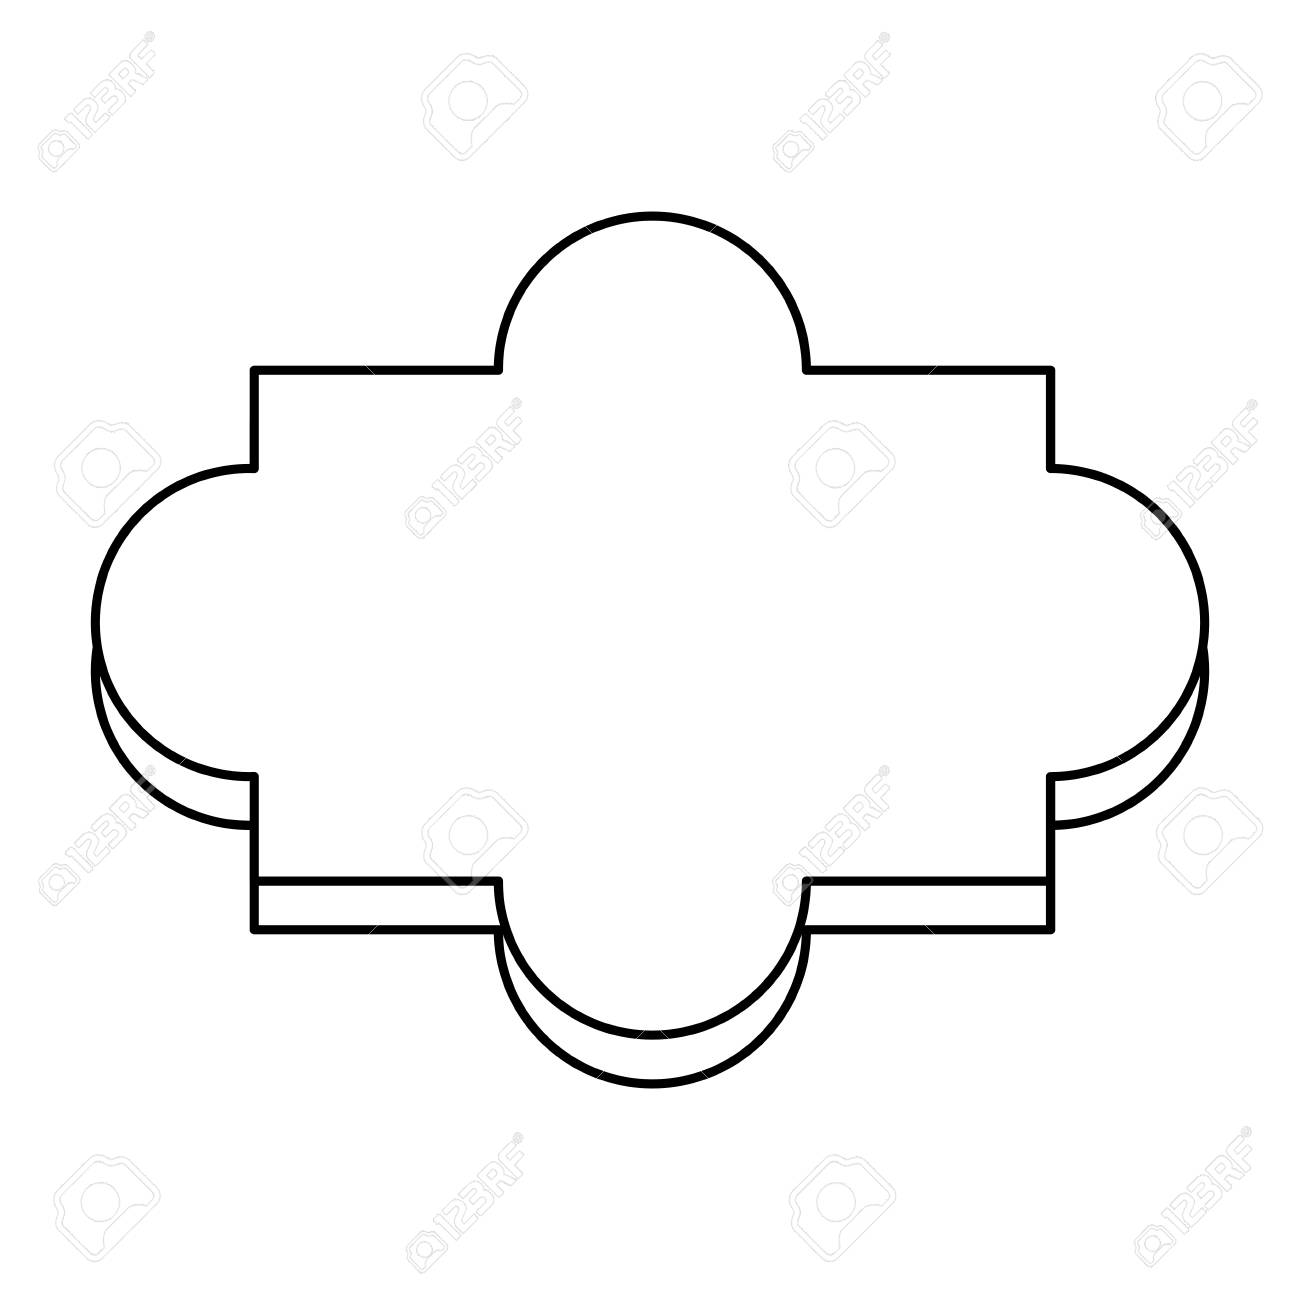 Puzzle Piece Symbol Image Collections Meaning Of This Symbol